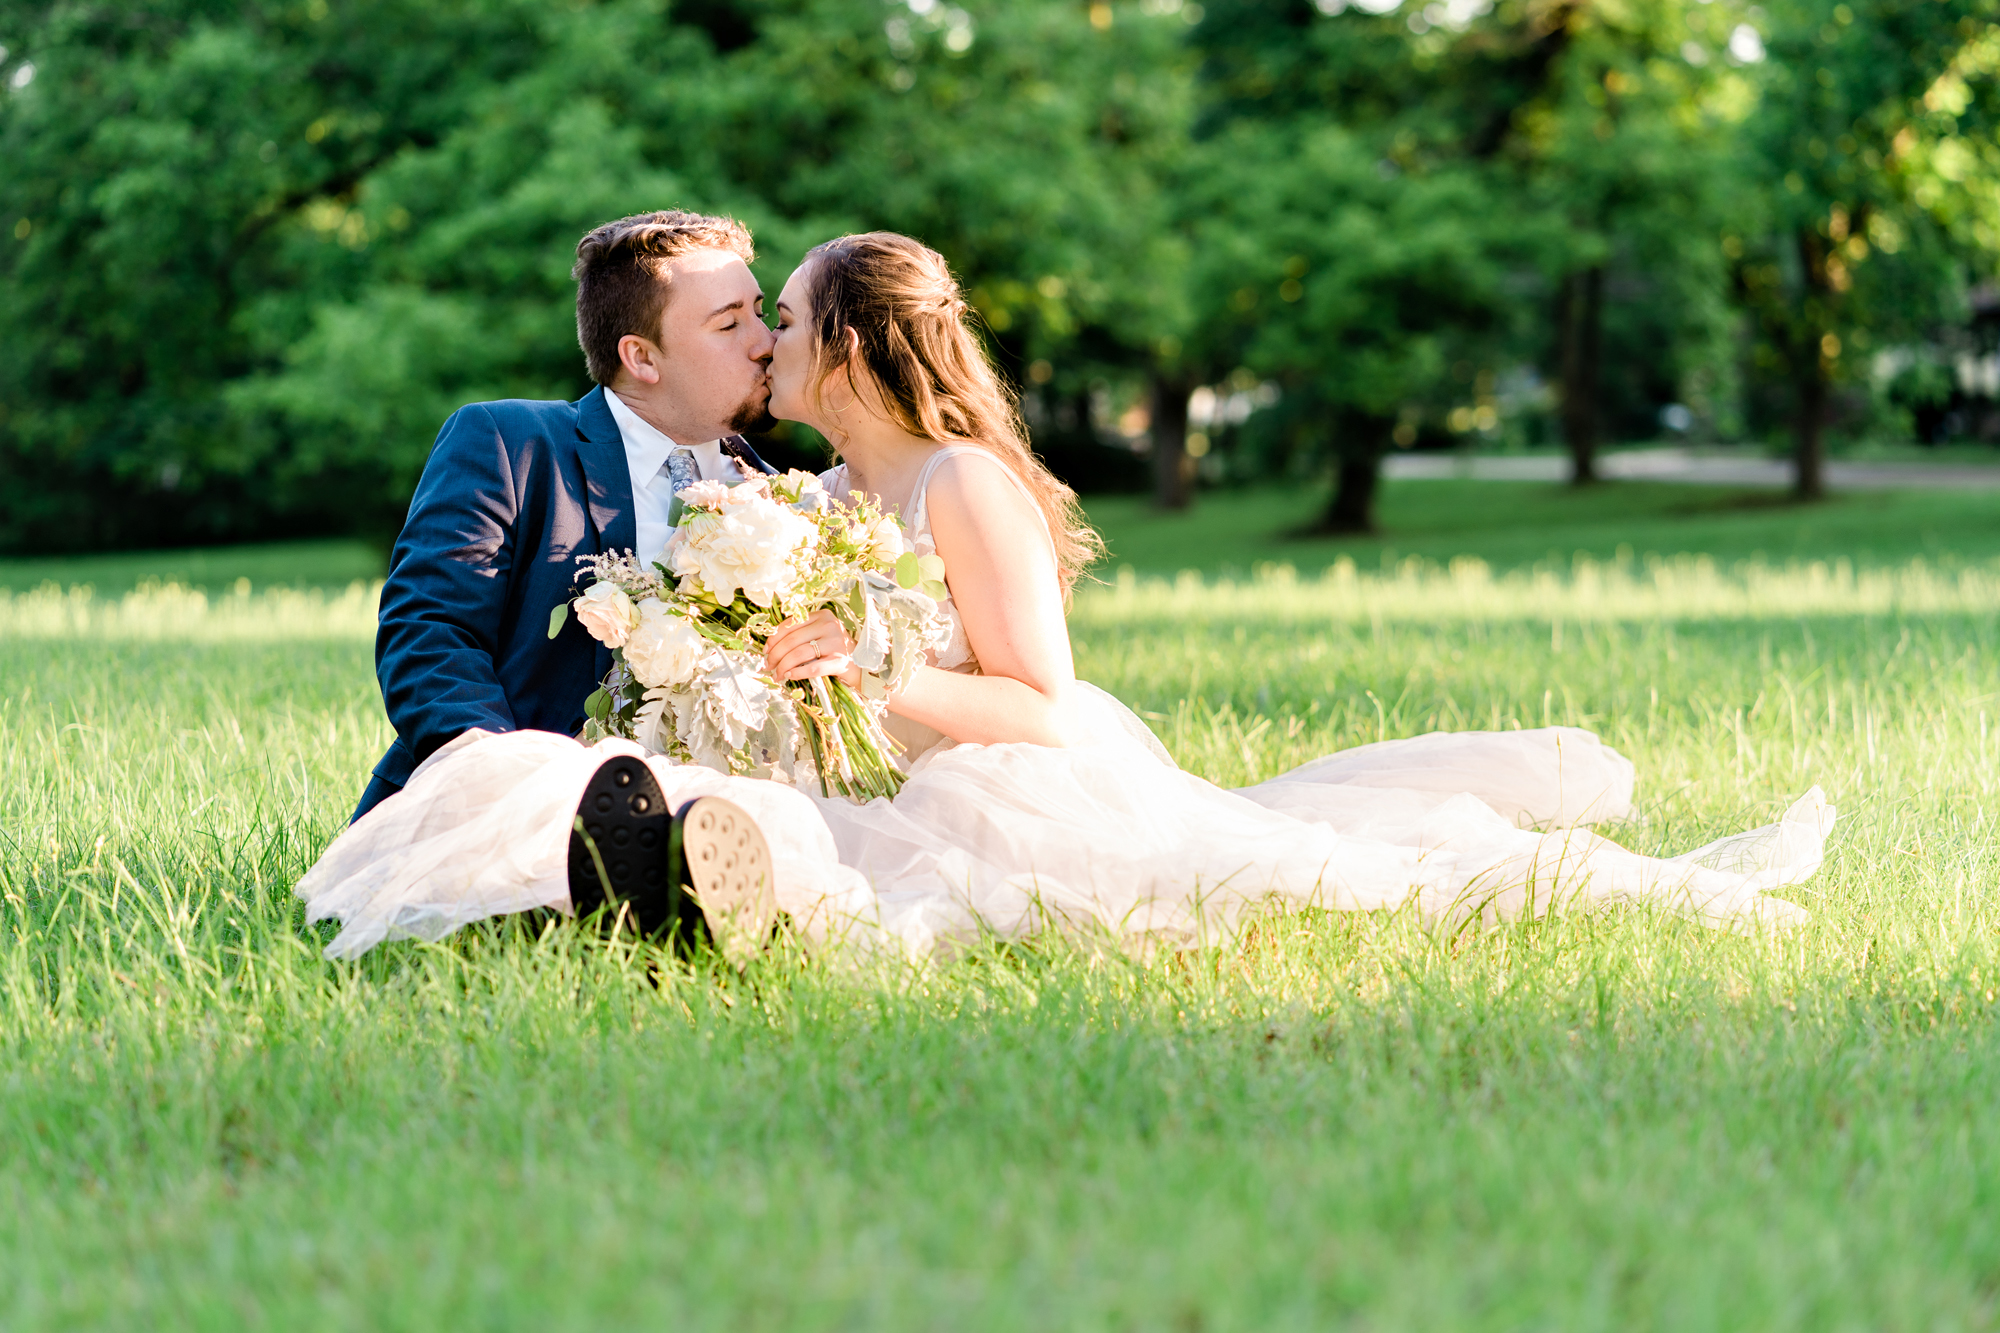 Eclectic-Alabama-Wedding-Photographers-Nick-Drollette-Photography-123.jpg